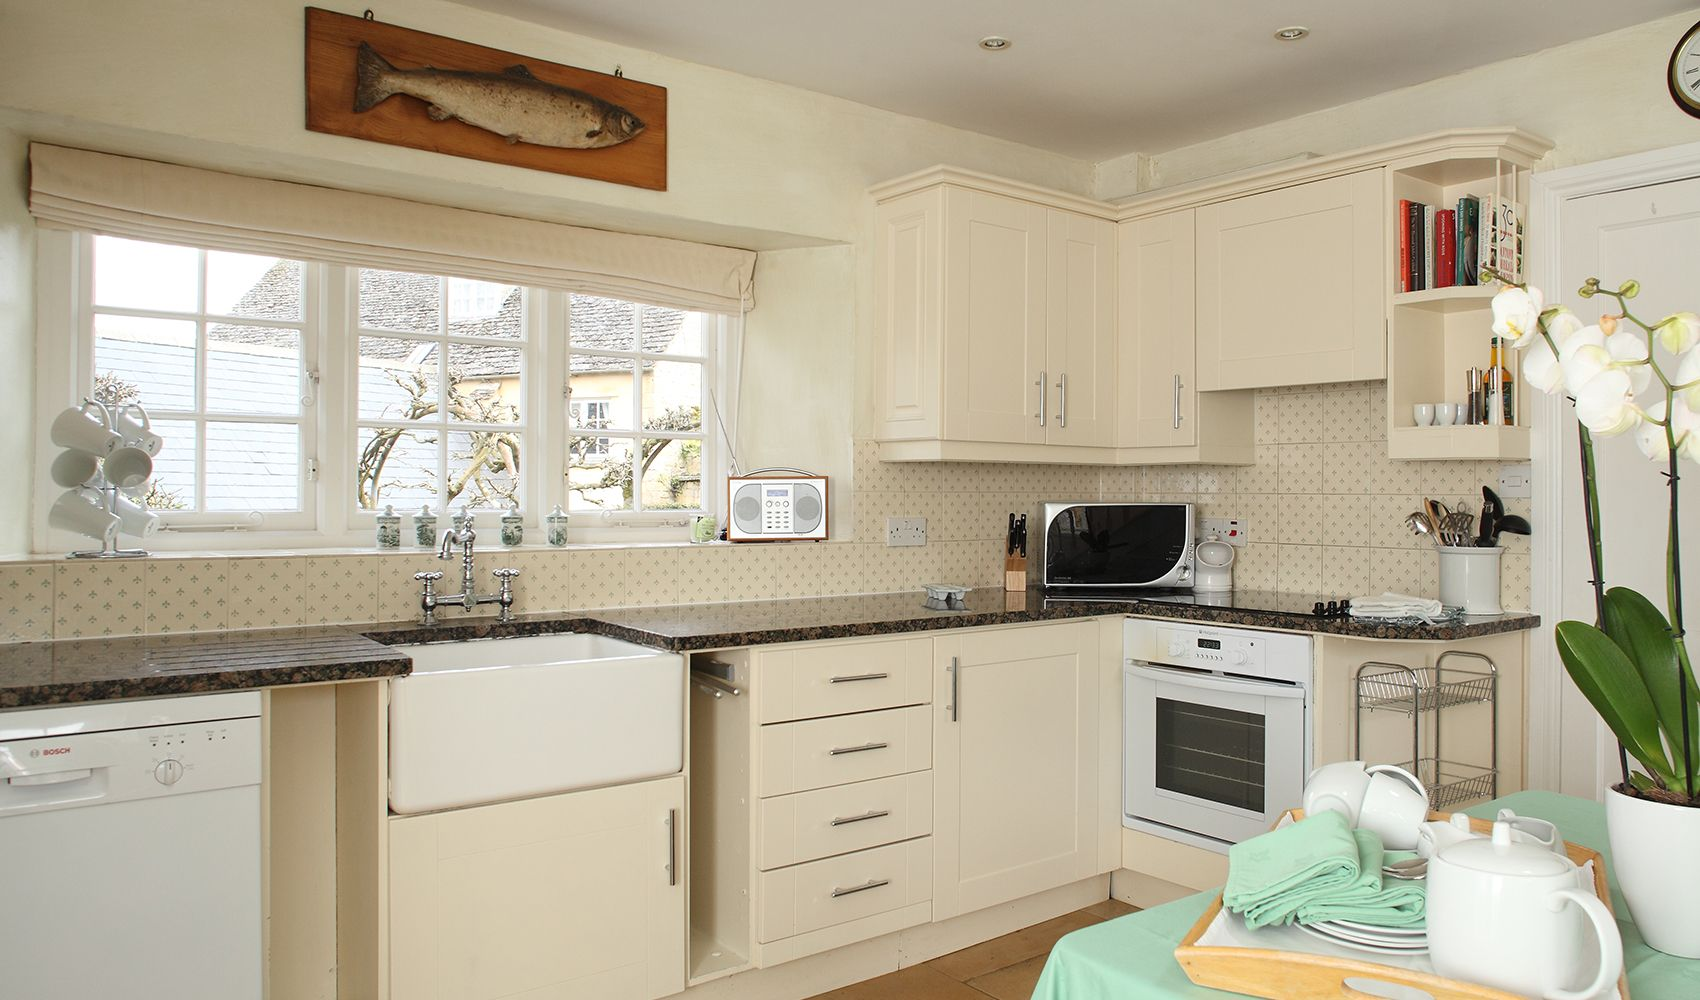 Ground floor: Light well equipped kitchen with breakfasting table